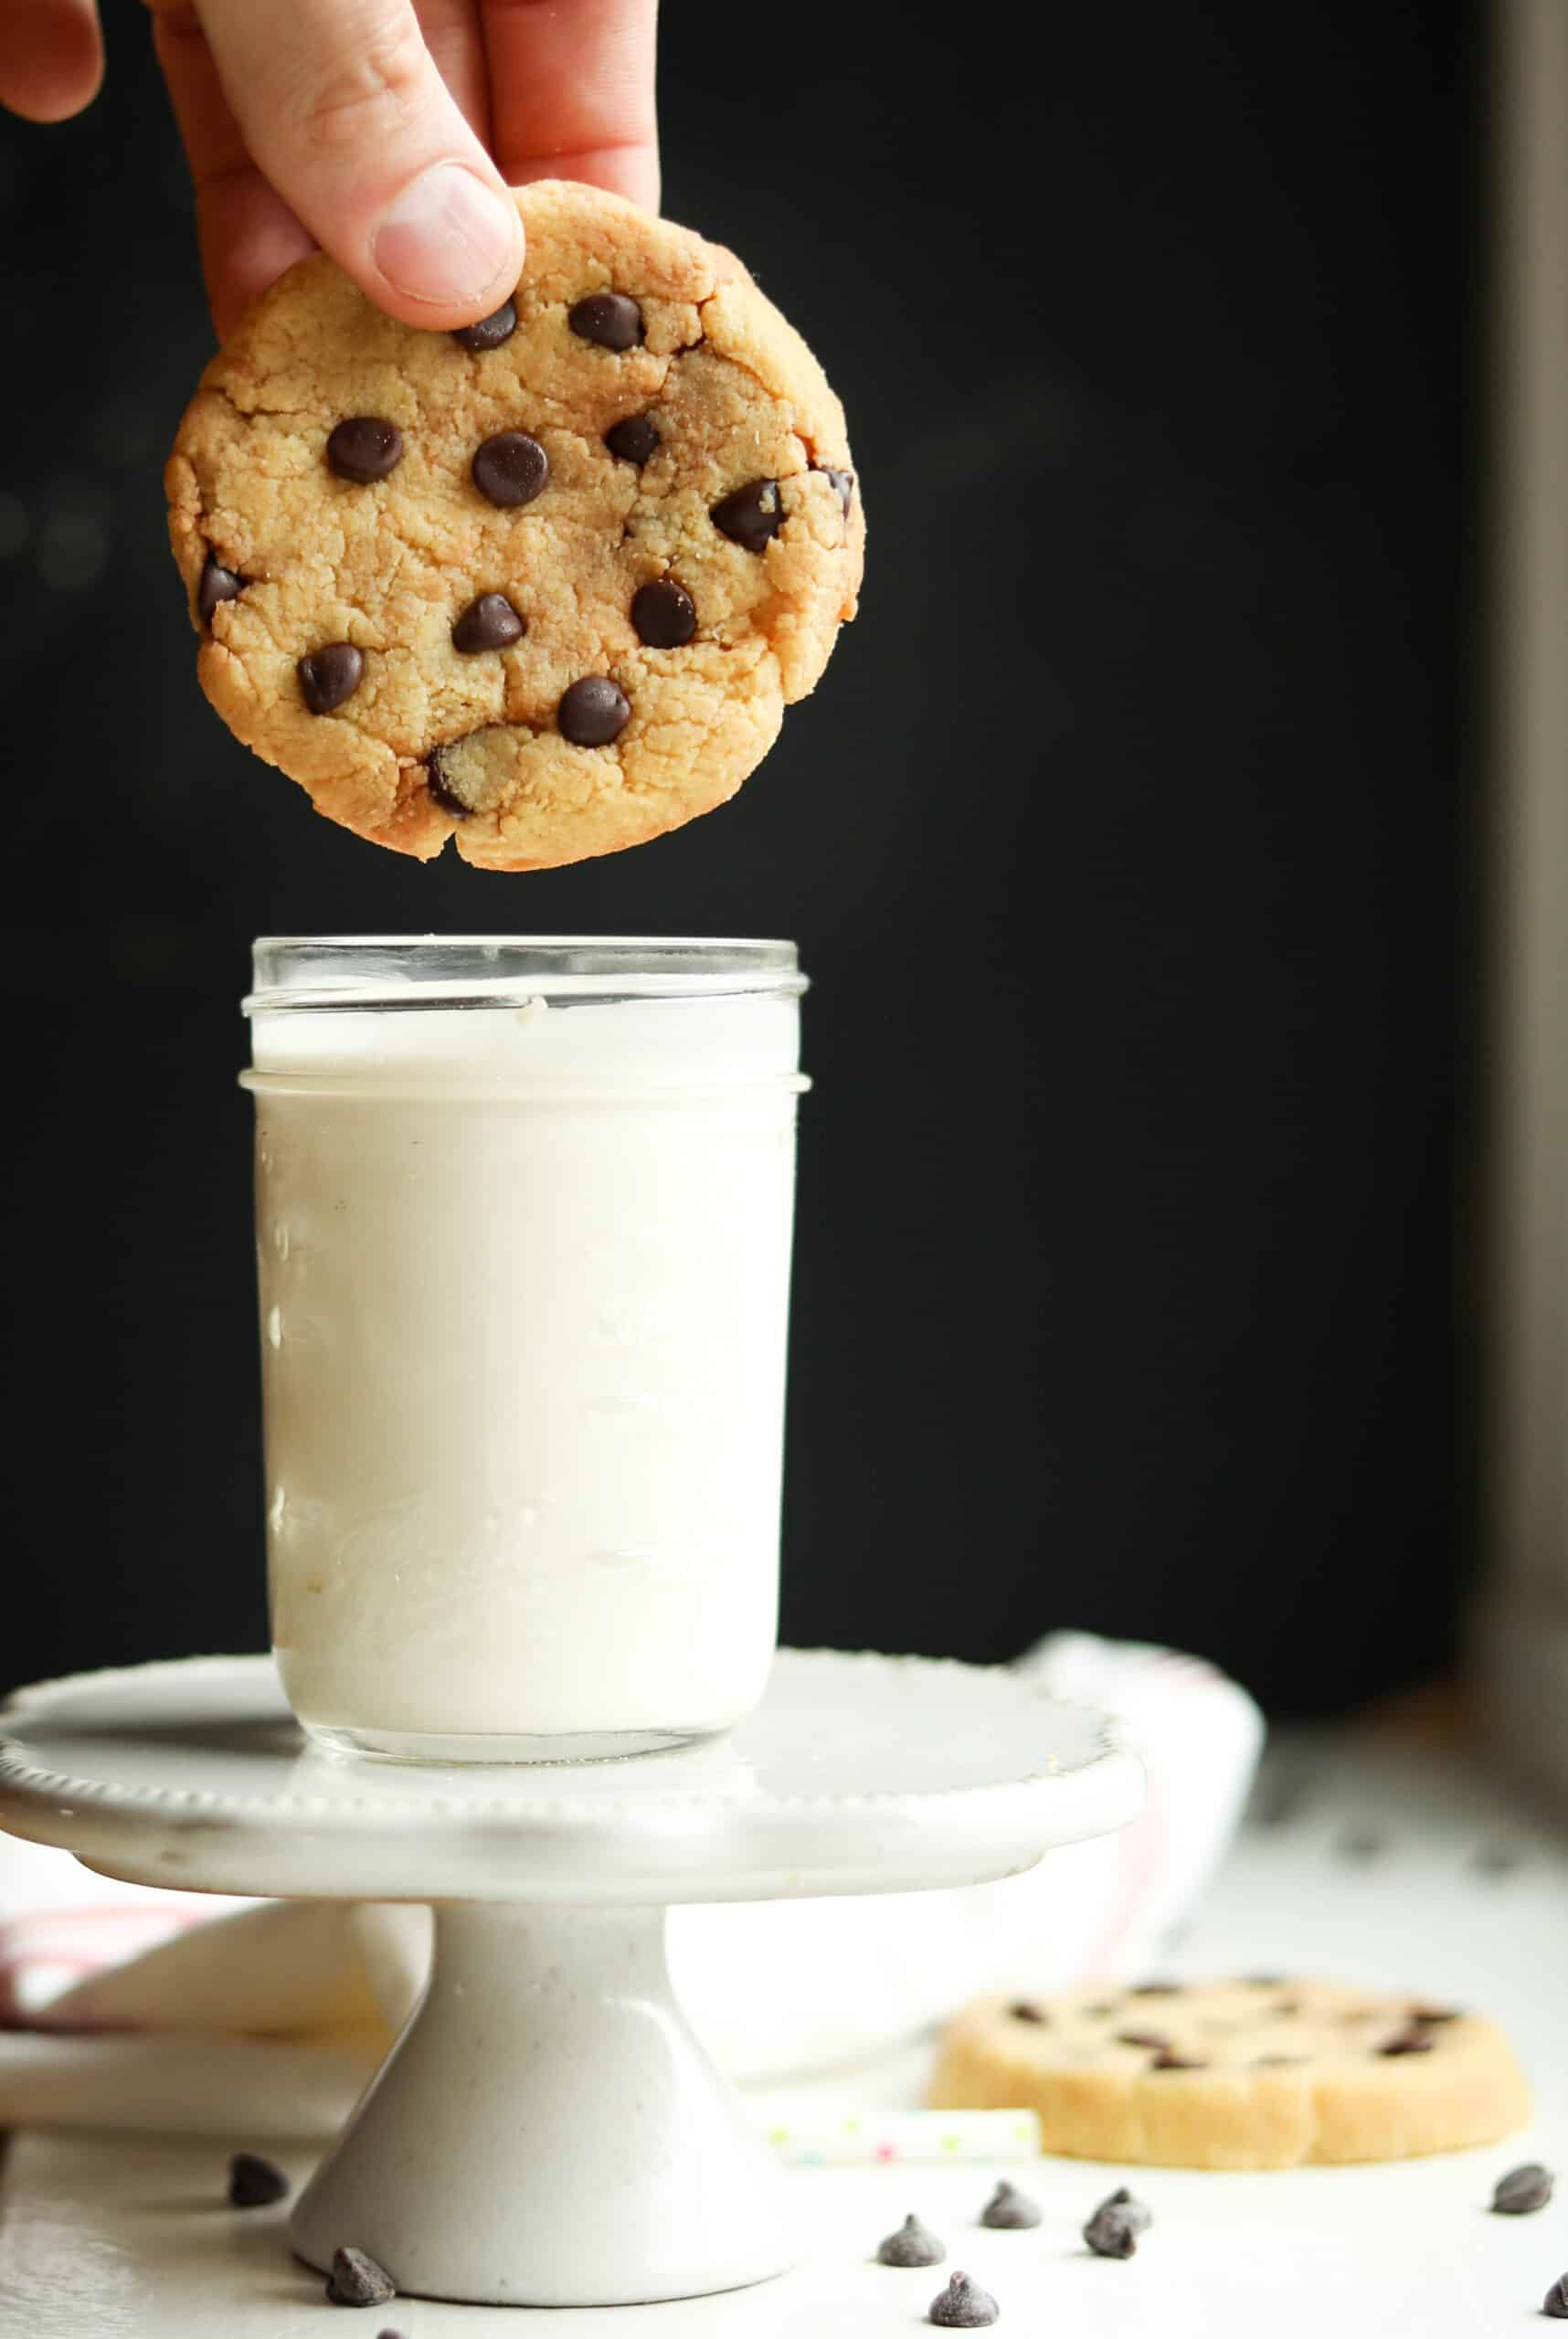 A chocolate chip cookie about to be dipped into milk.